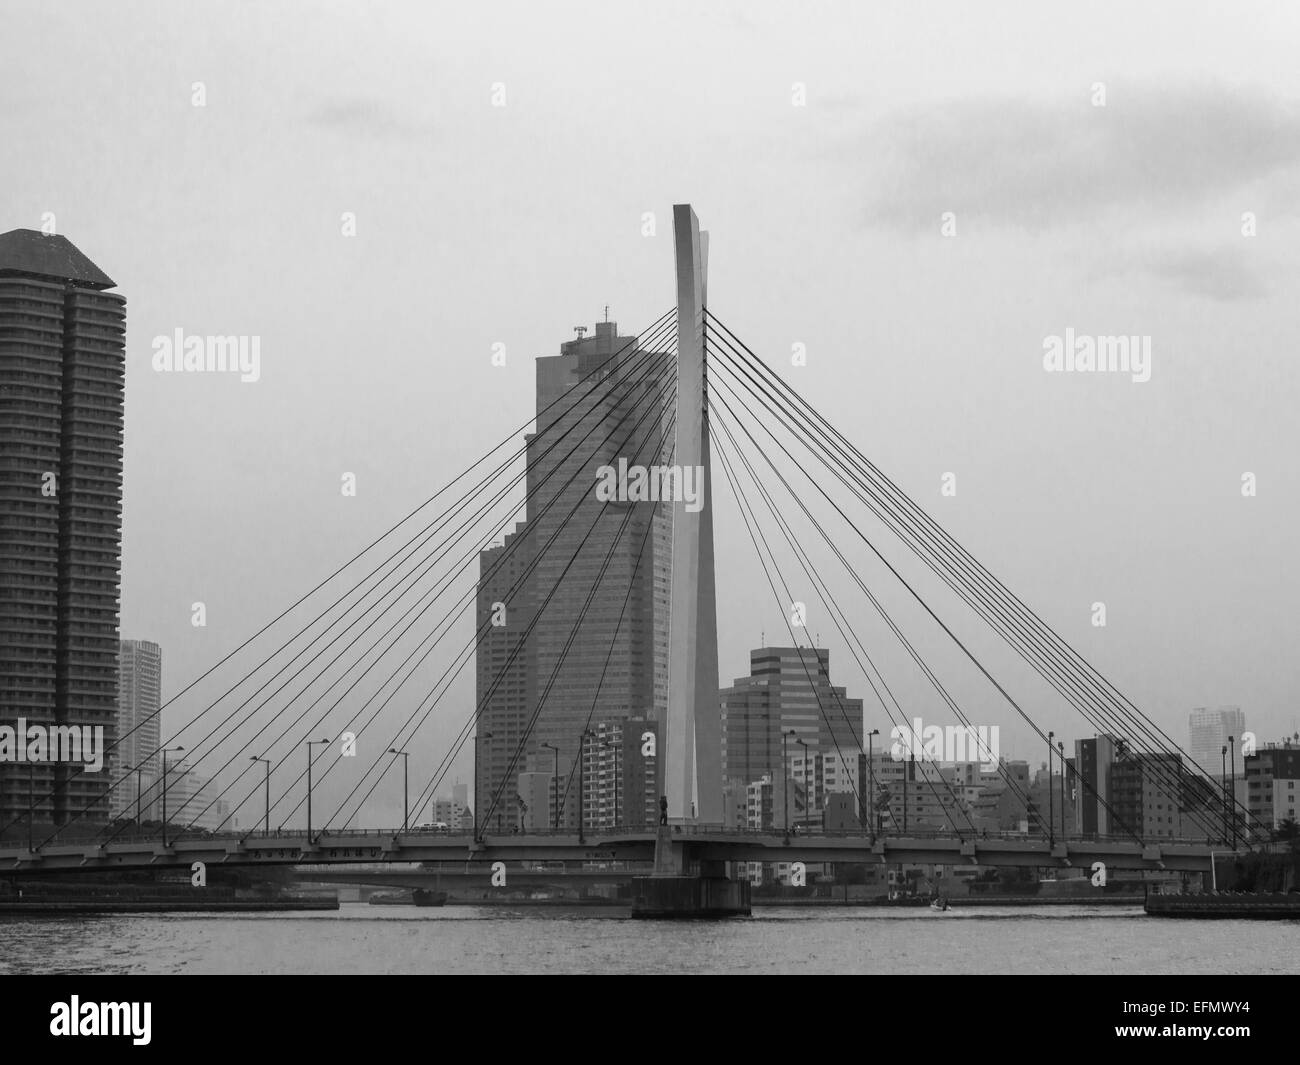 Black and white picture of Sumida river margins with apartment tower and crossing bridge - Stock Image